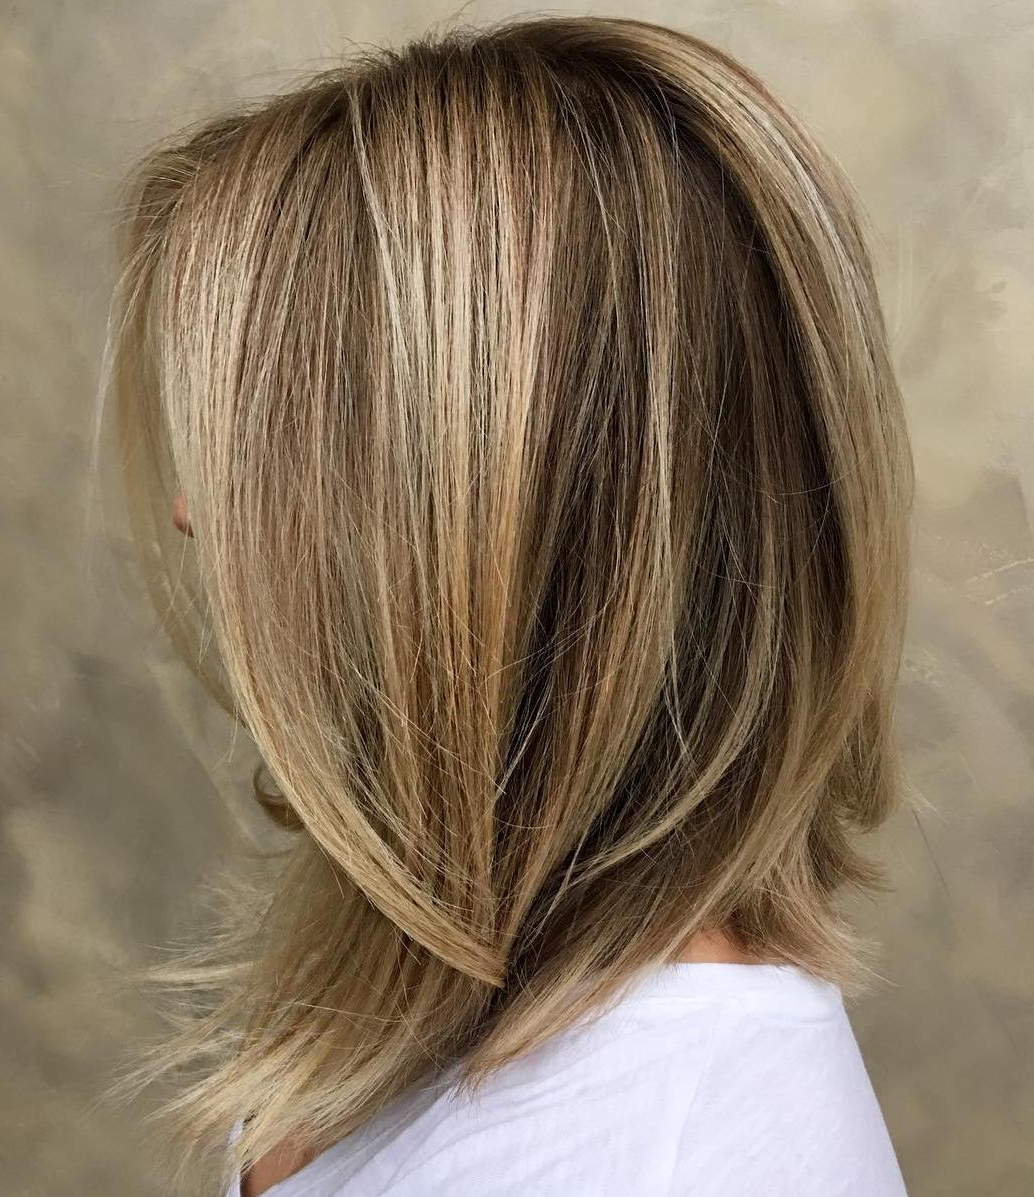 60 Inspiring Long Bob Hairstyles And Long Bob Haircuts For 2019 Within 2019 Asymmetrical Choppy Lob Hairstyles (View 10 of 20)